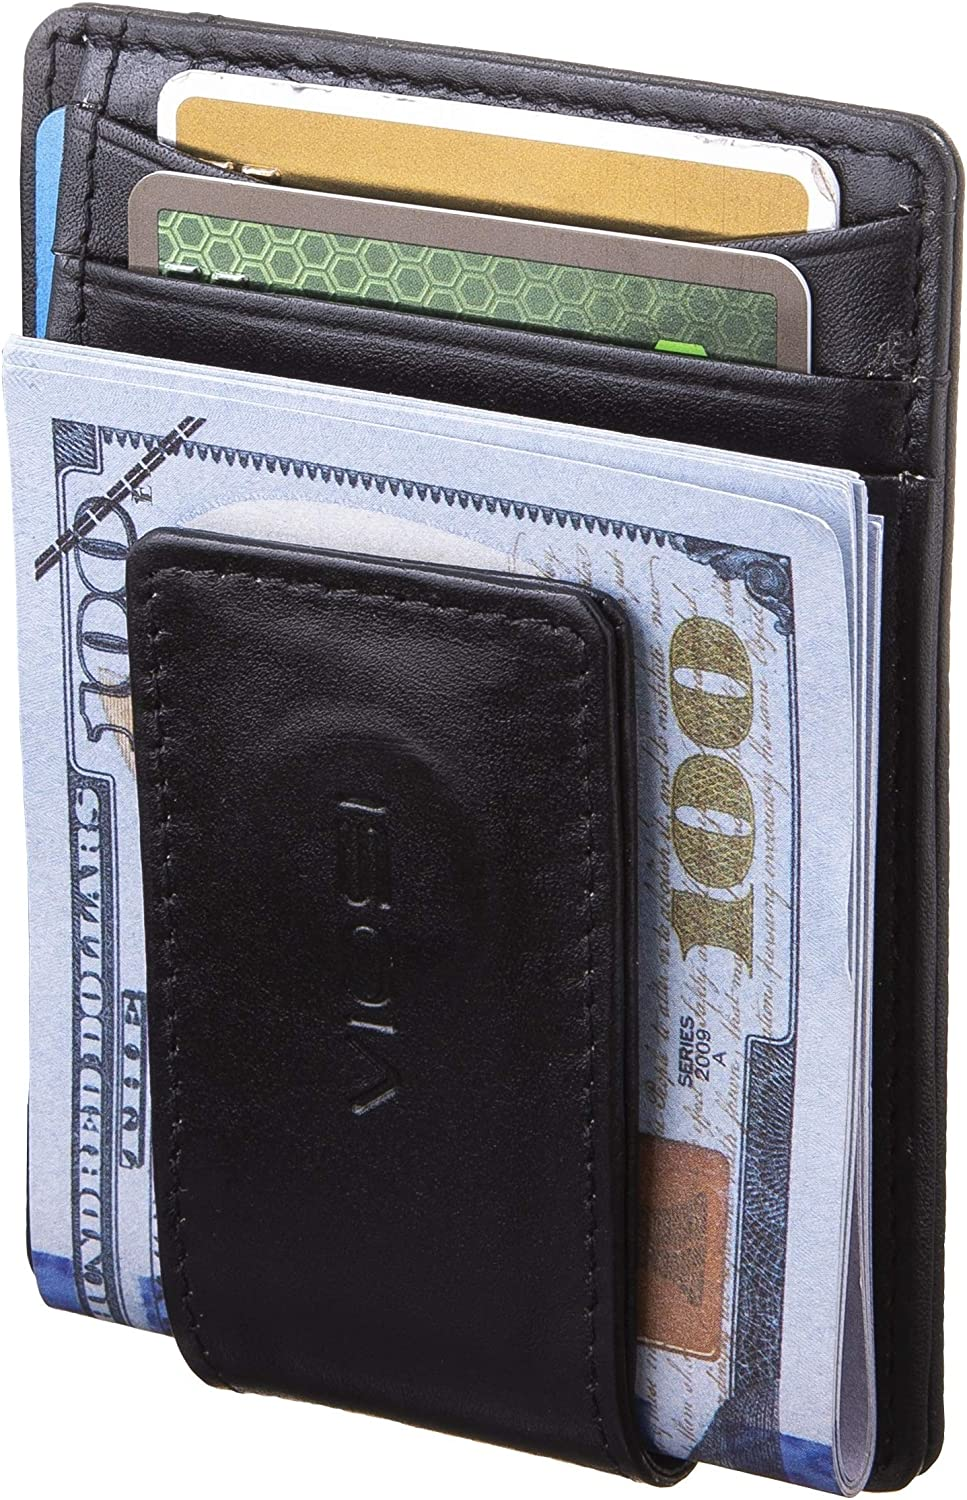 VIOSI Money Clip Slim Leather Wallet For Men Front Pocket RFID Blocking Card Holder With Rare Earth Magnets